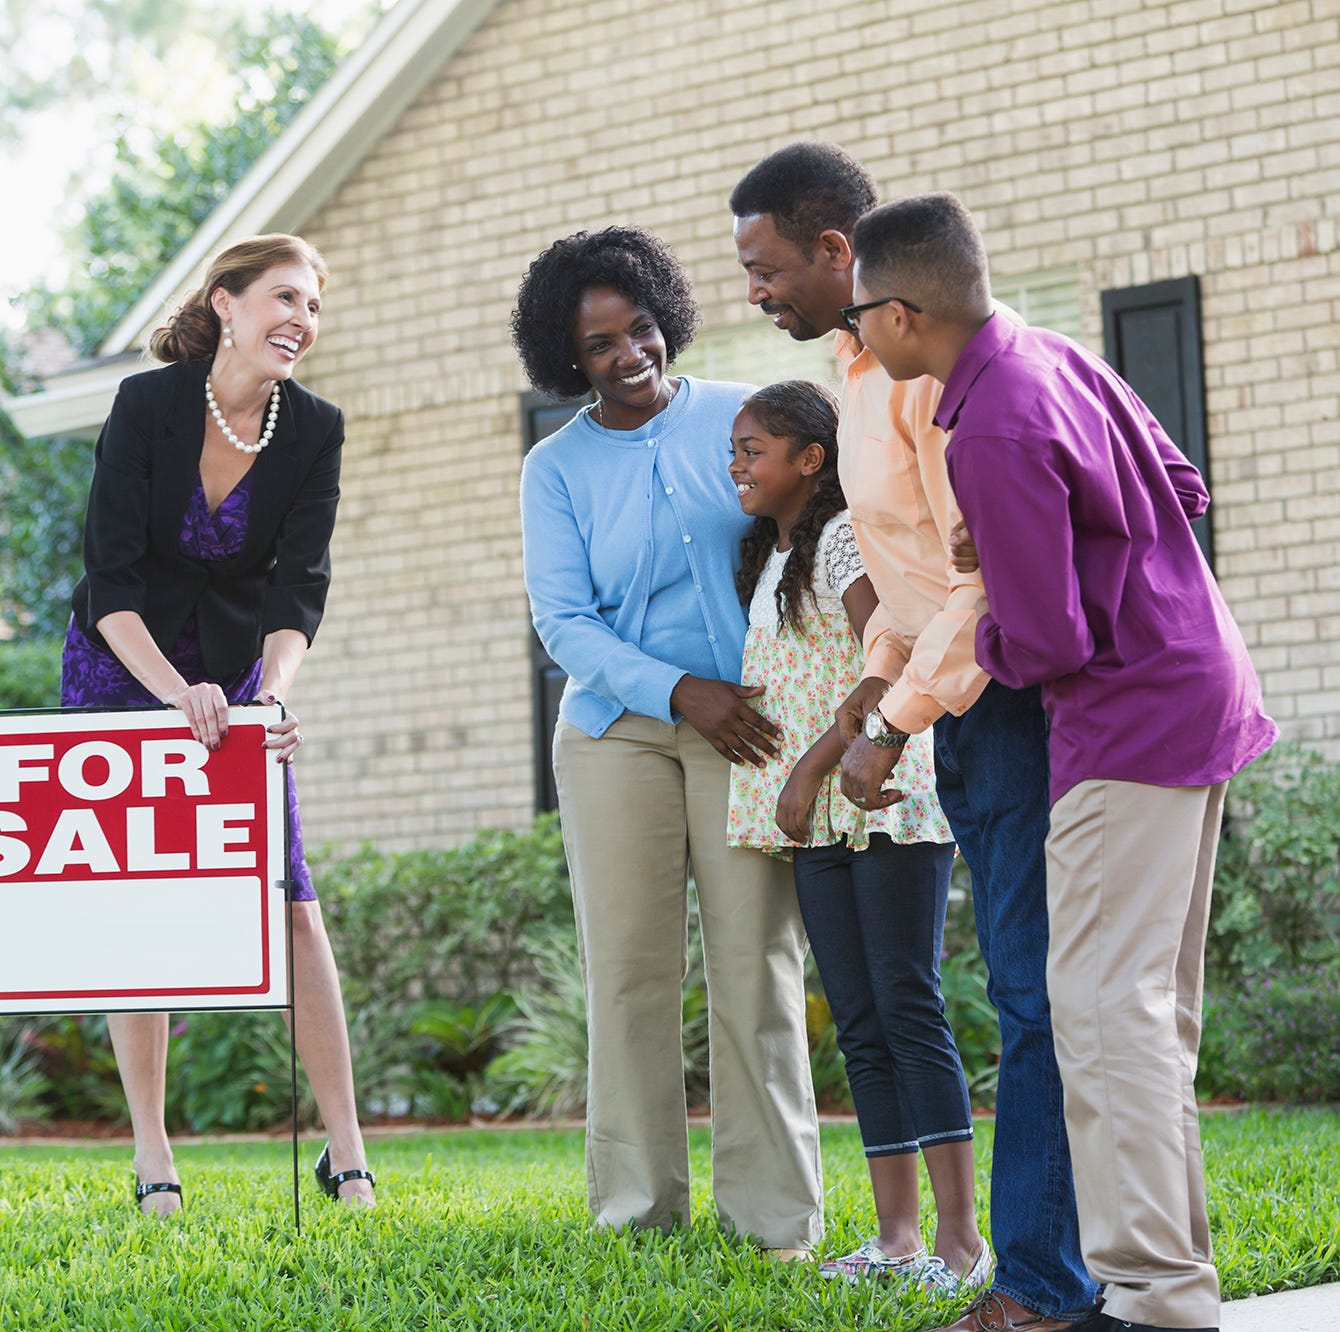 Despite Trends, Housing Market Still Favors Sellers